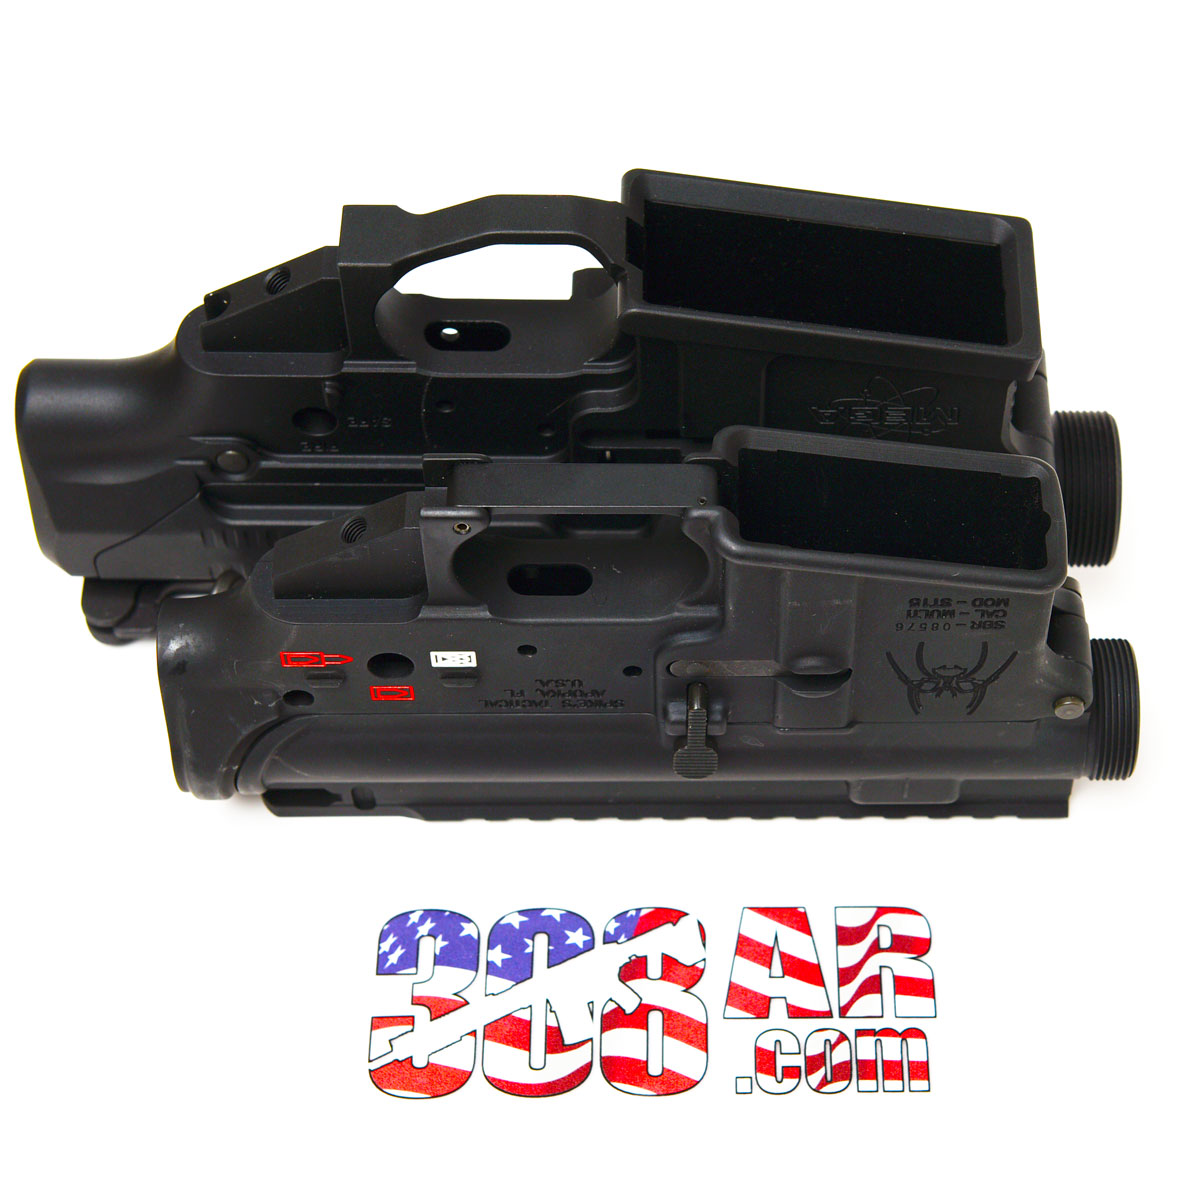 AR-15 Lower Receiver Visually Compared to a 308 AR Receiver